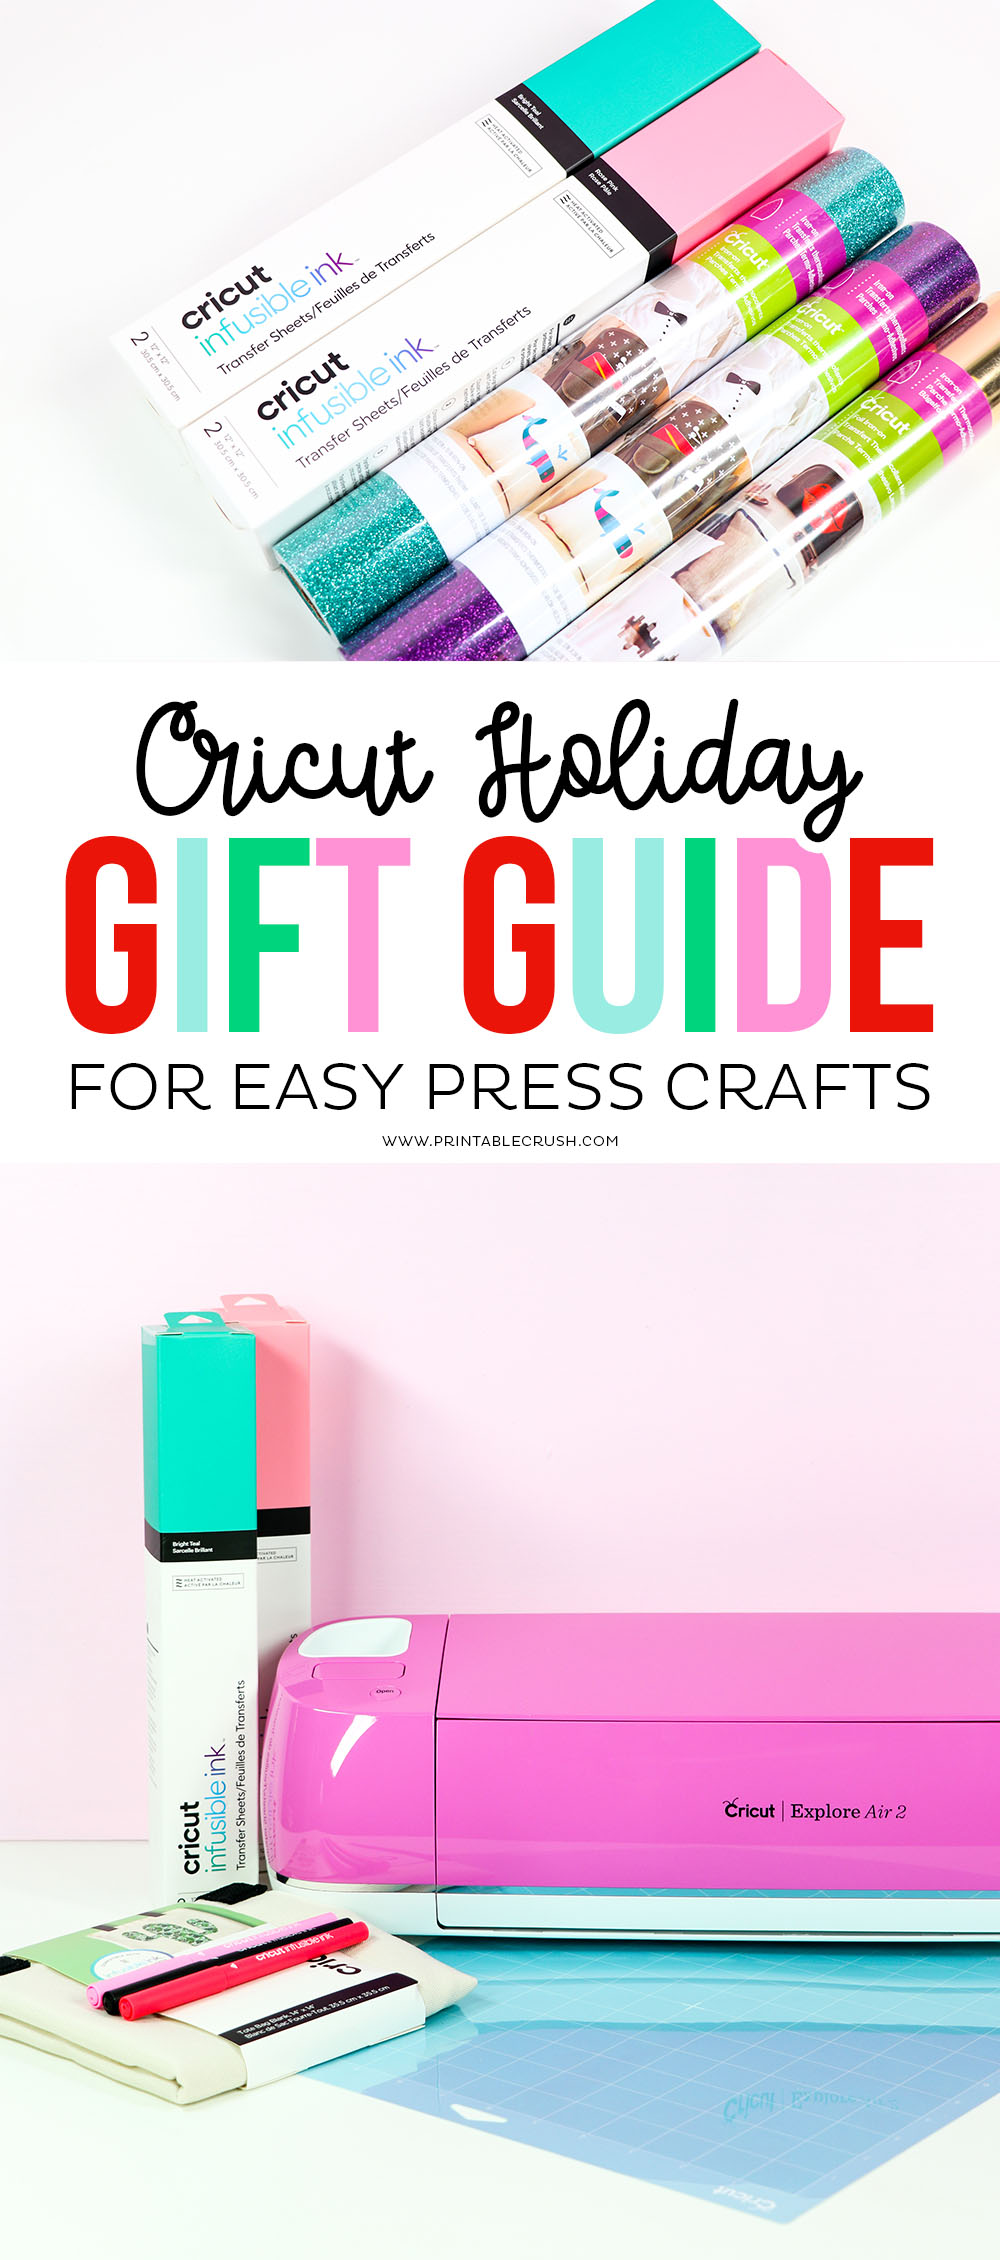 Cricut EasyPress 2 Craft Supplies to Buy for the Holidays